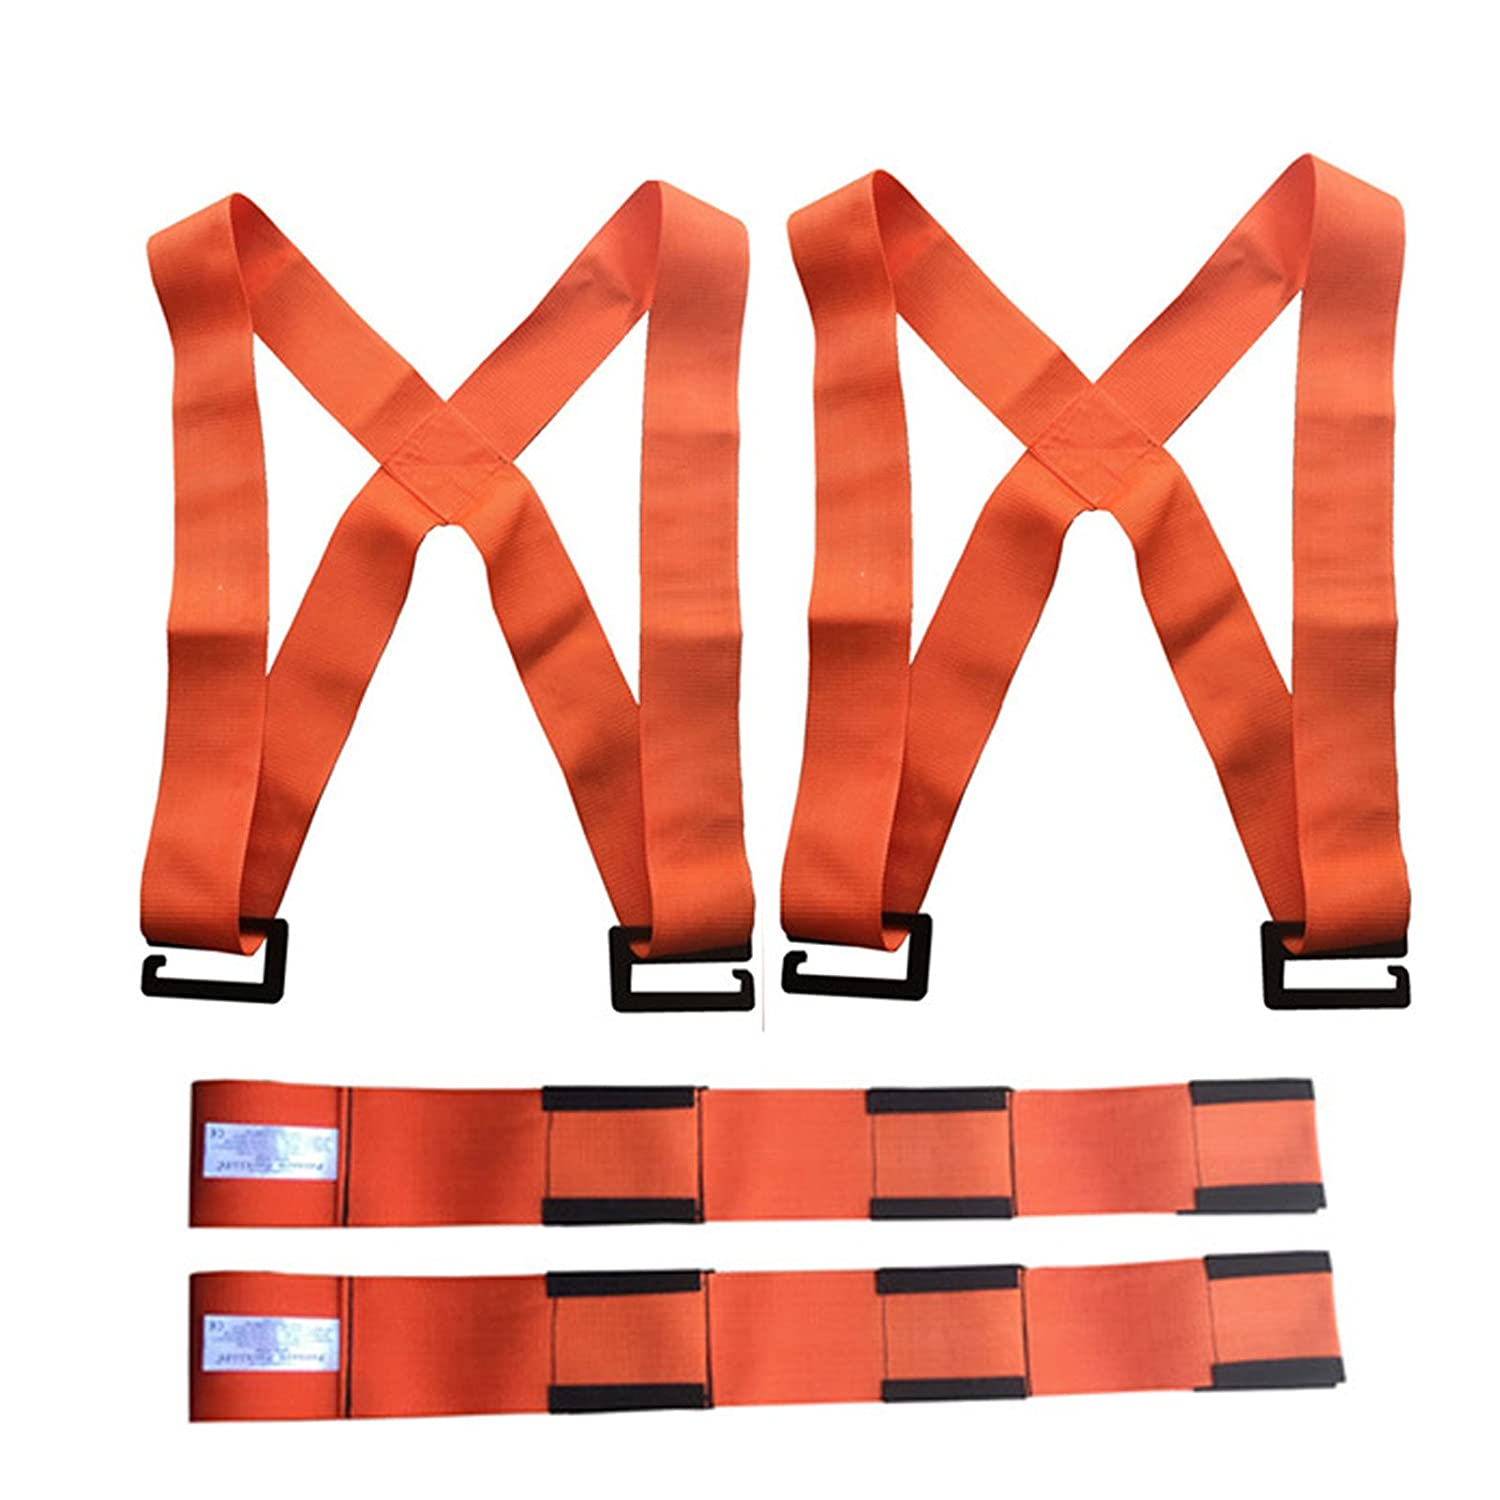 Lifting and Moving Straps, 2-Person Lifting and Moving System - Forearm Forklift Lifting Straps Furniture Moving Belt for Lifting Bulky Items Magic Show